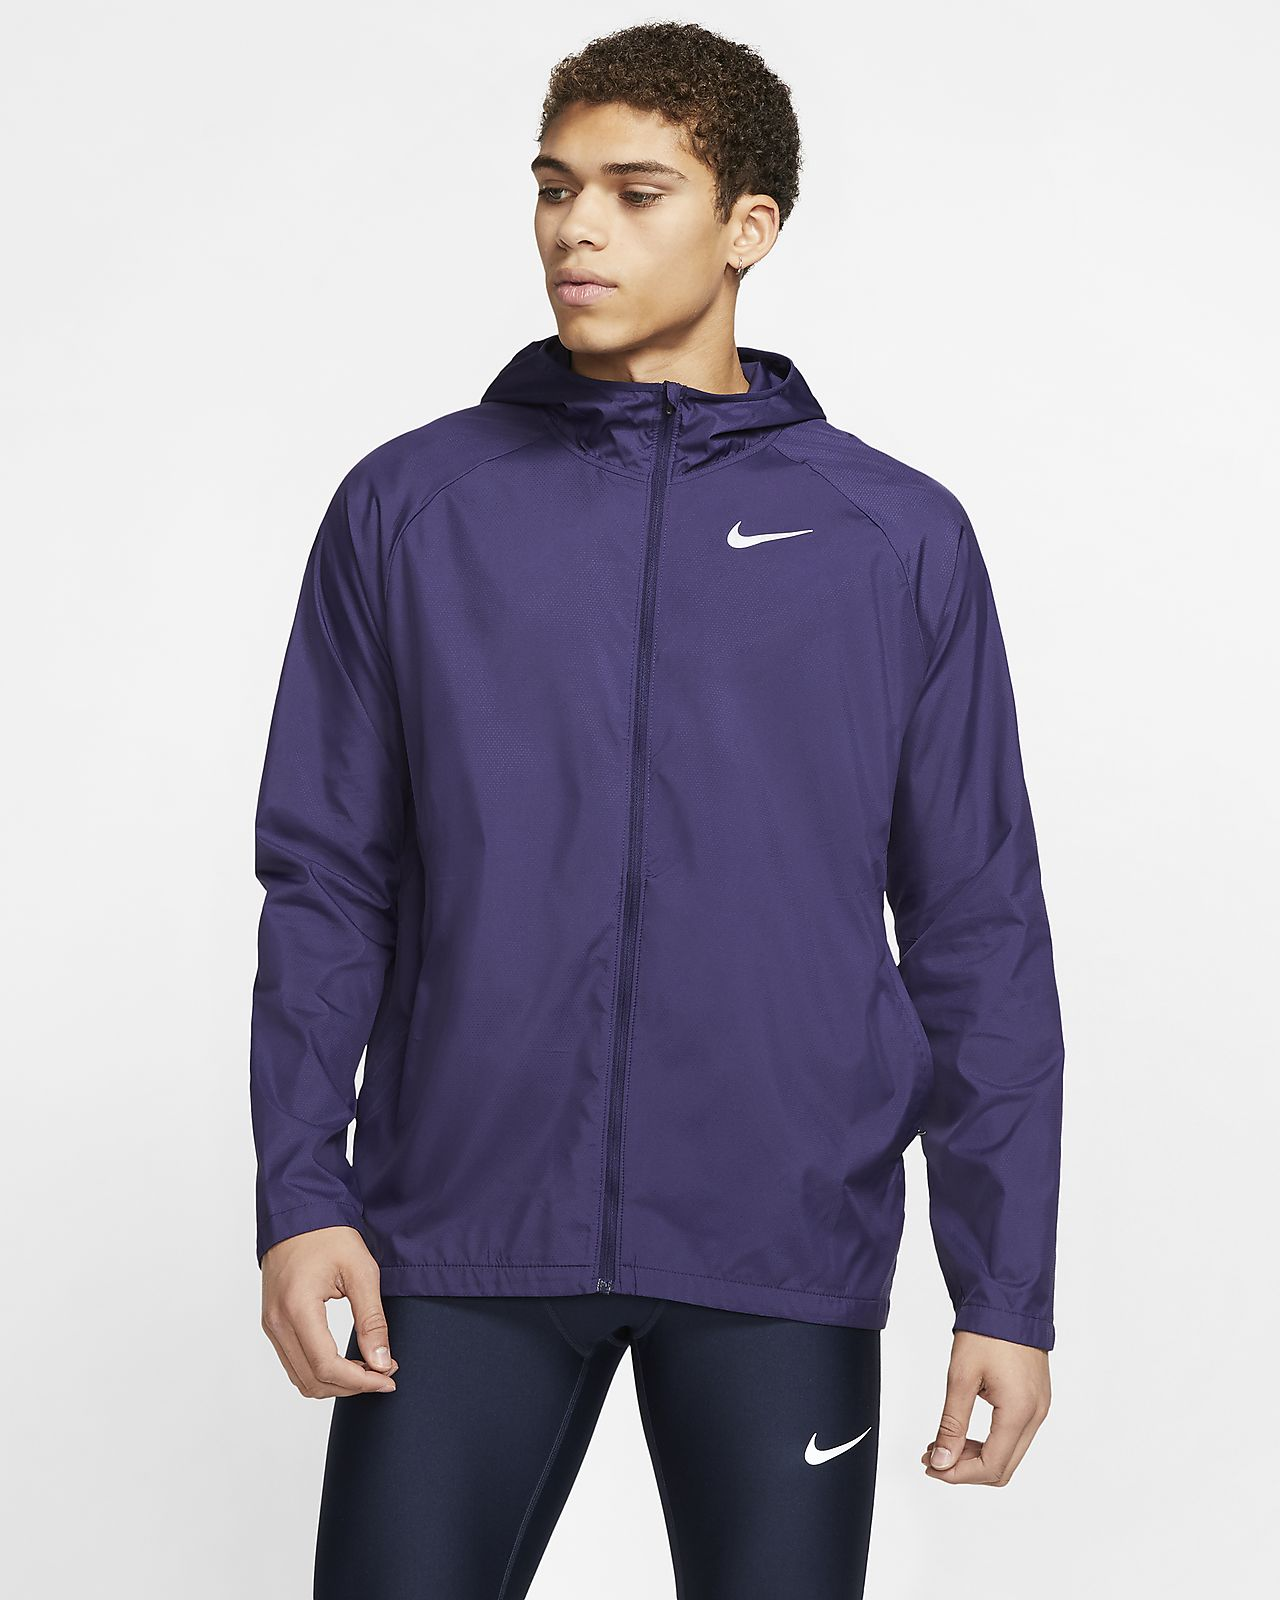 Nike Essential Men's Hooded Running Jacket